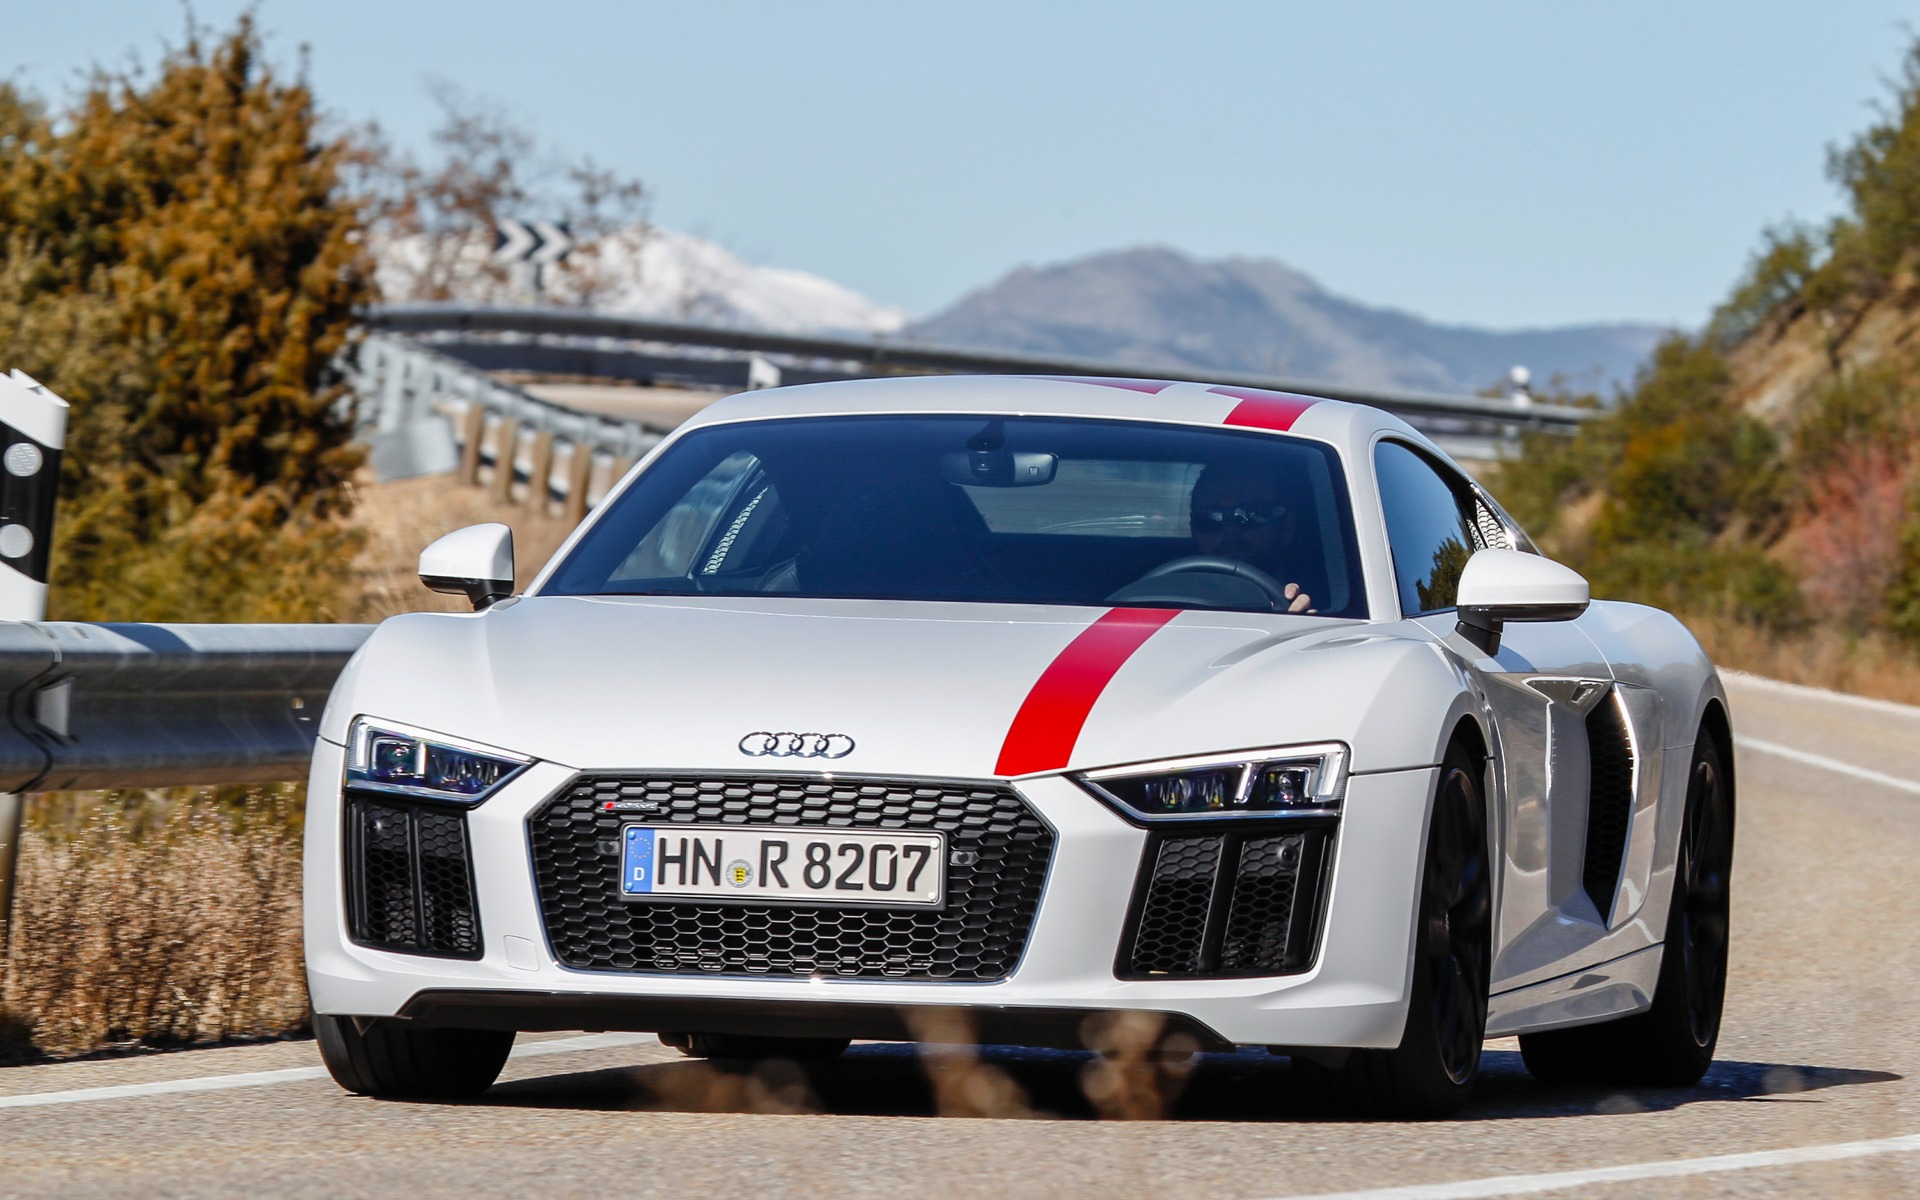 2018 Audi R8 V10 RWS: The Rear Wheel Drive R8